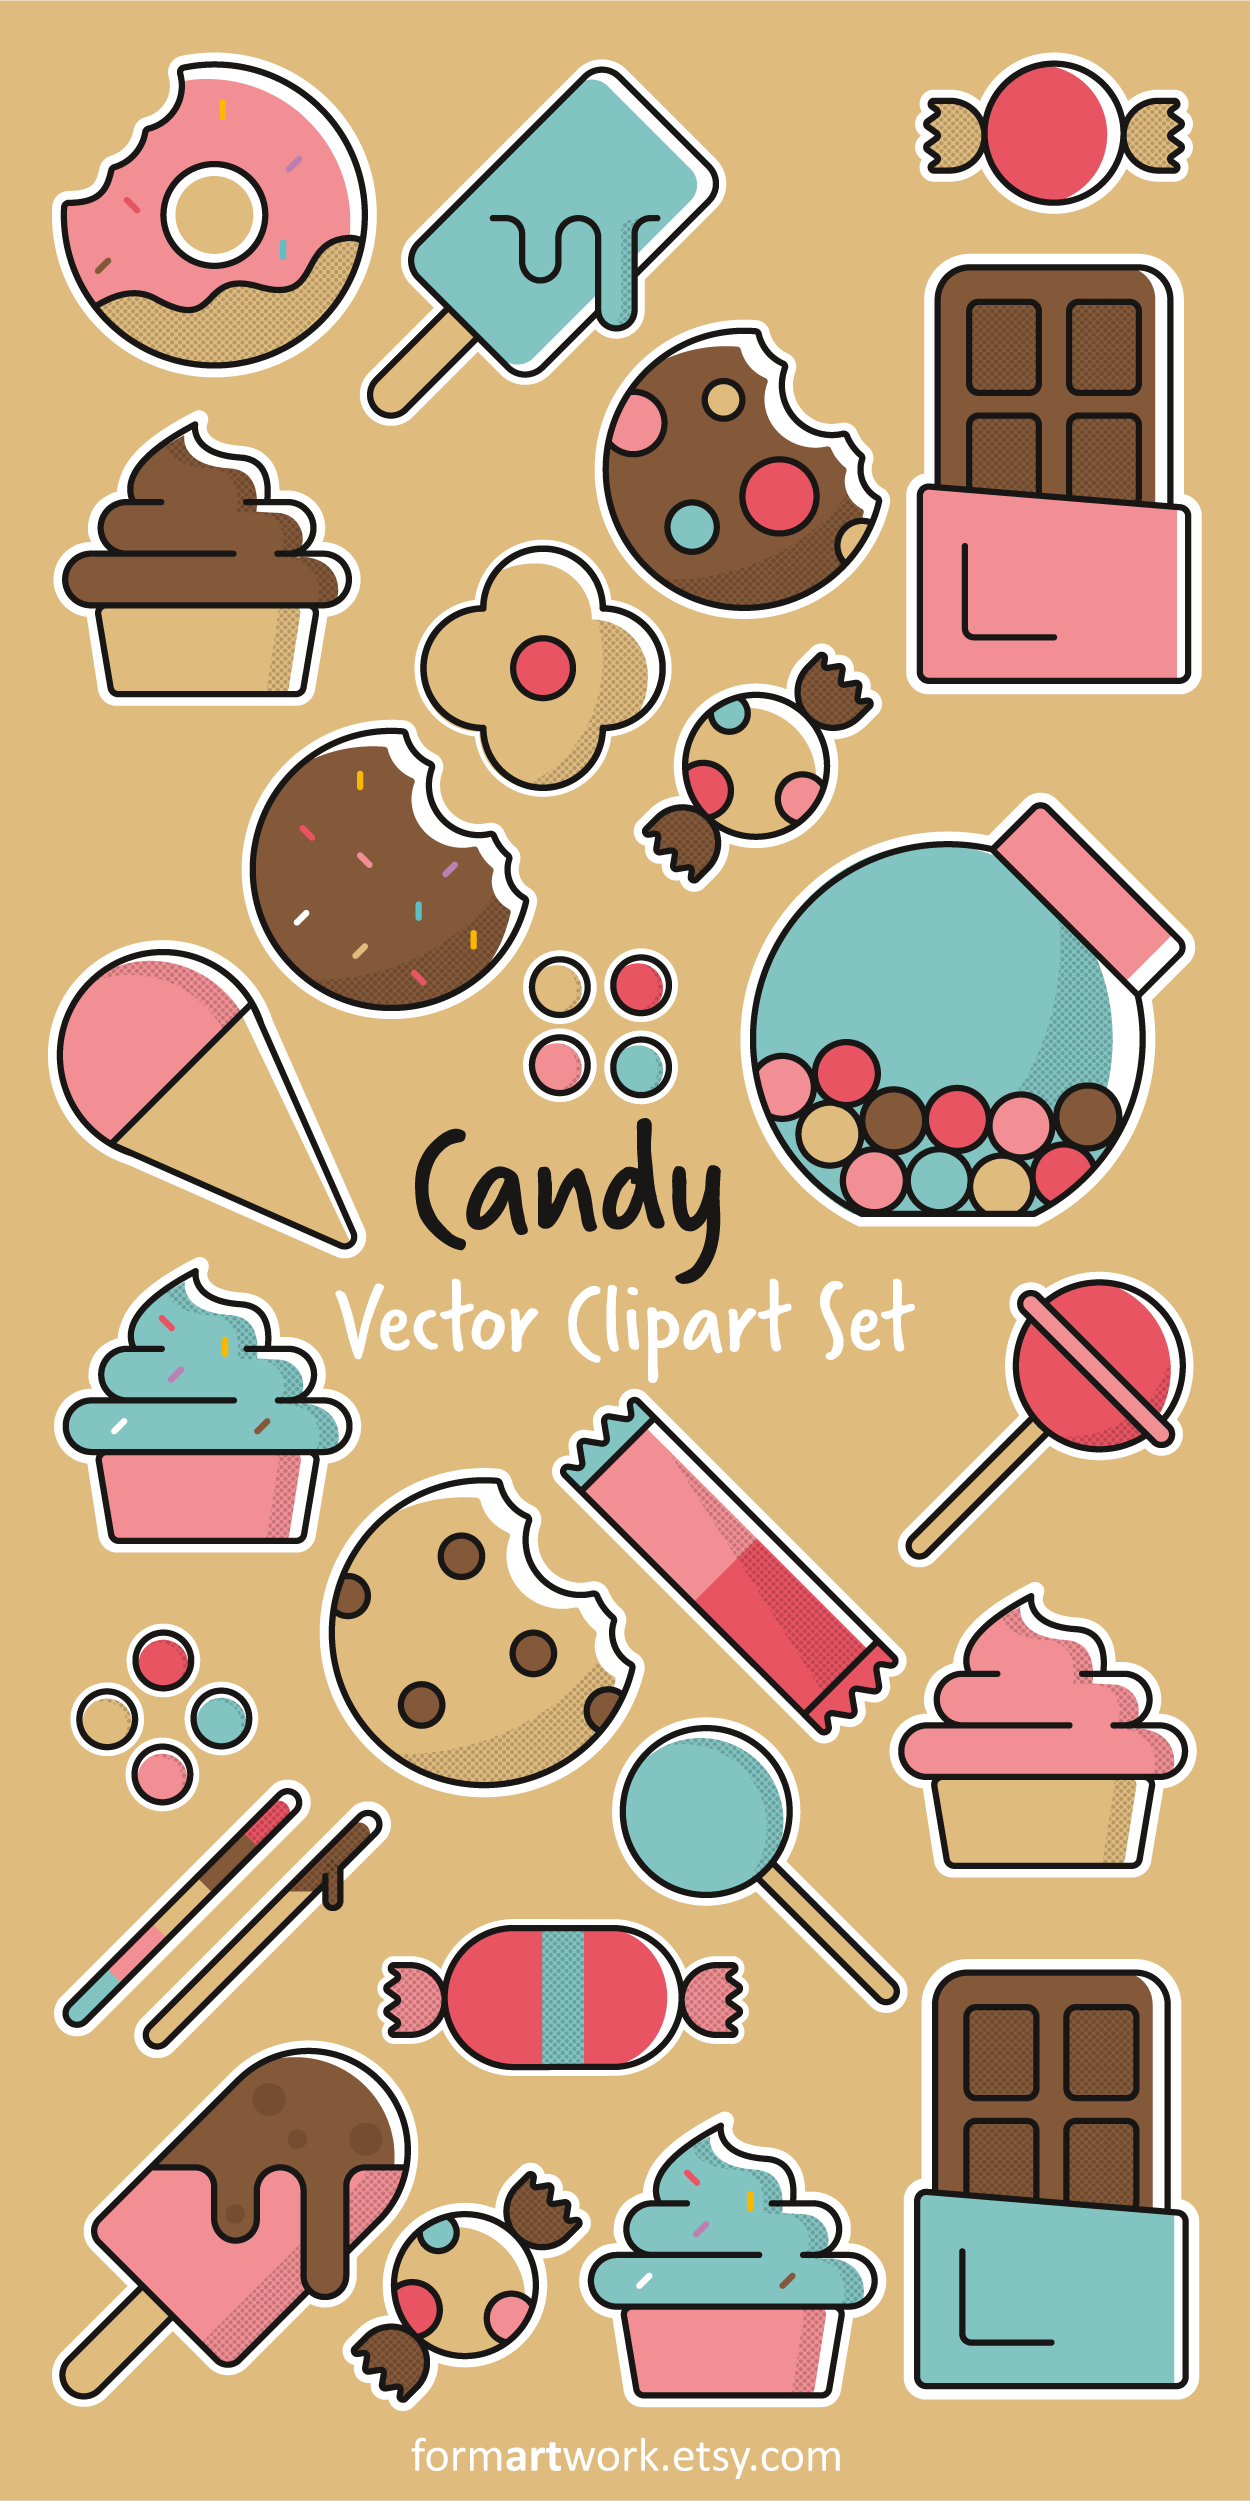 Cliparts Küche Essen Candy Vector Clipart Commercial Use Sweets Clip Art Set Candy